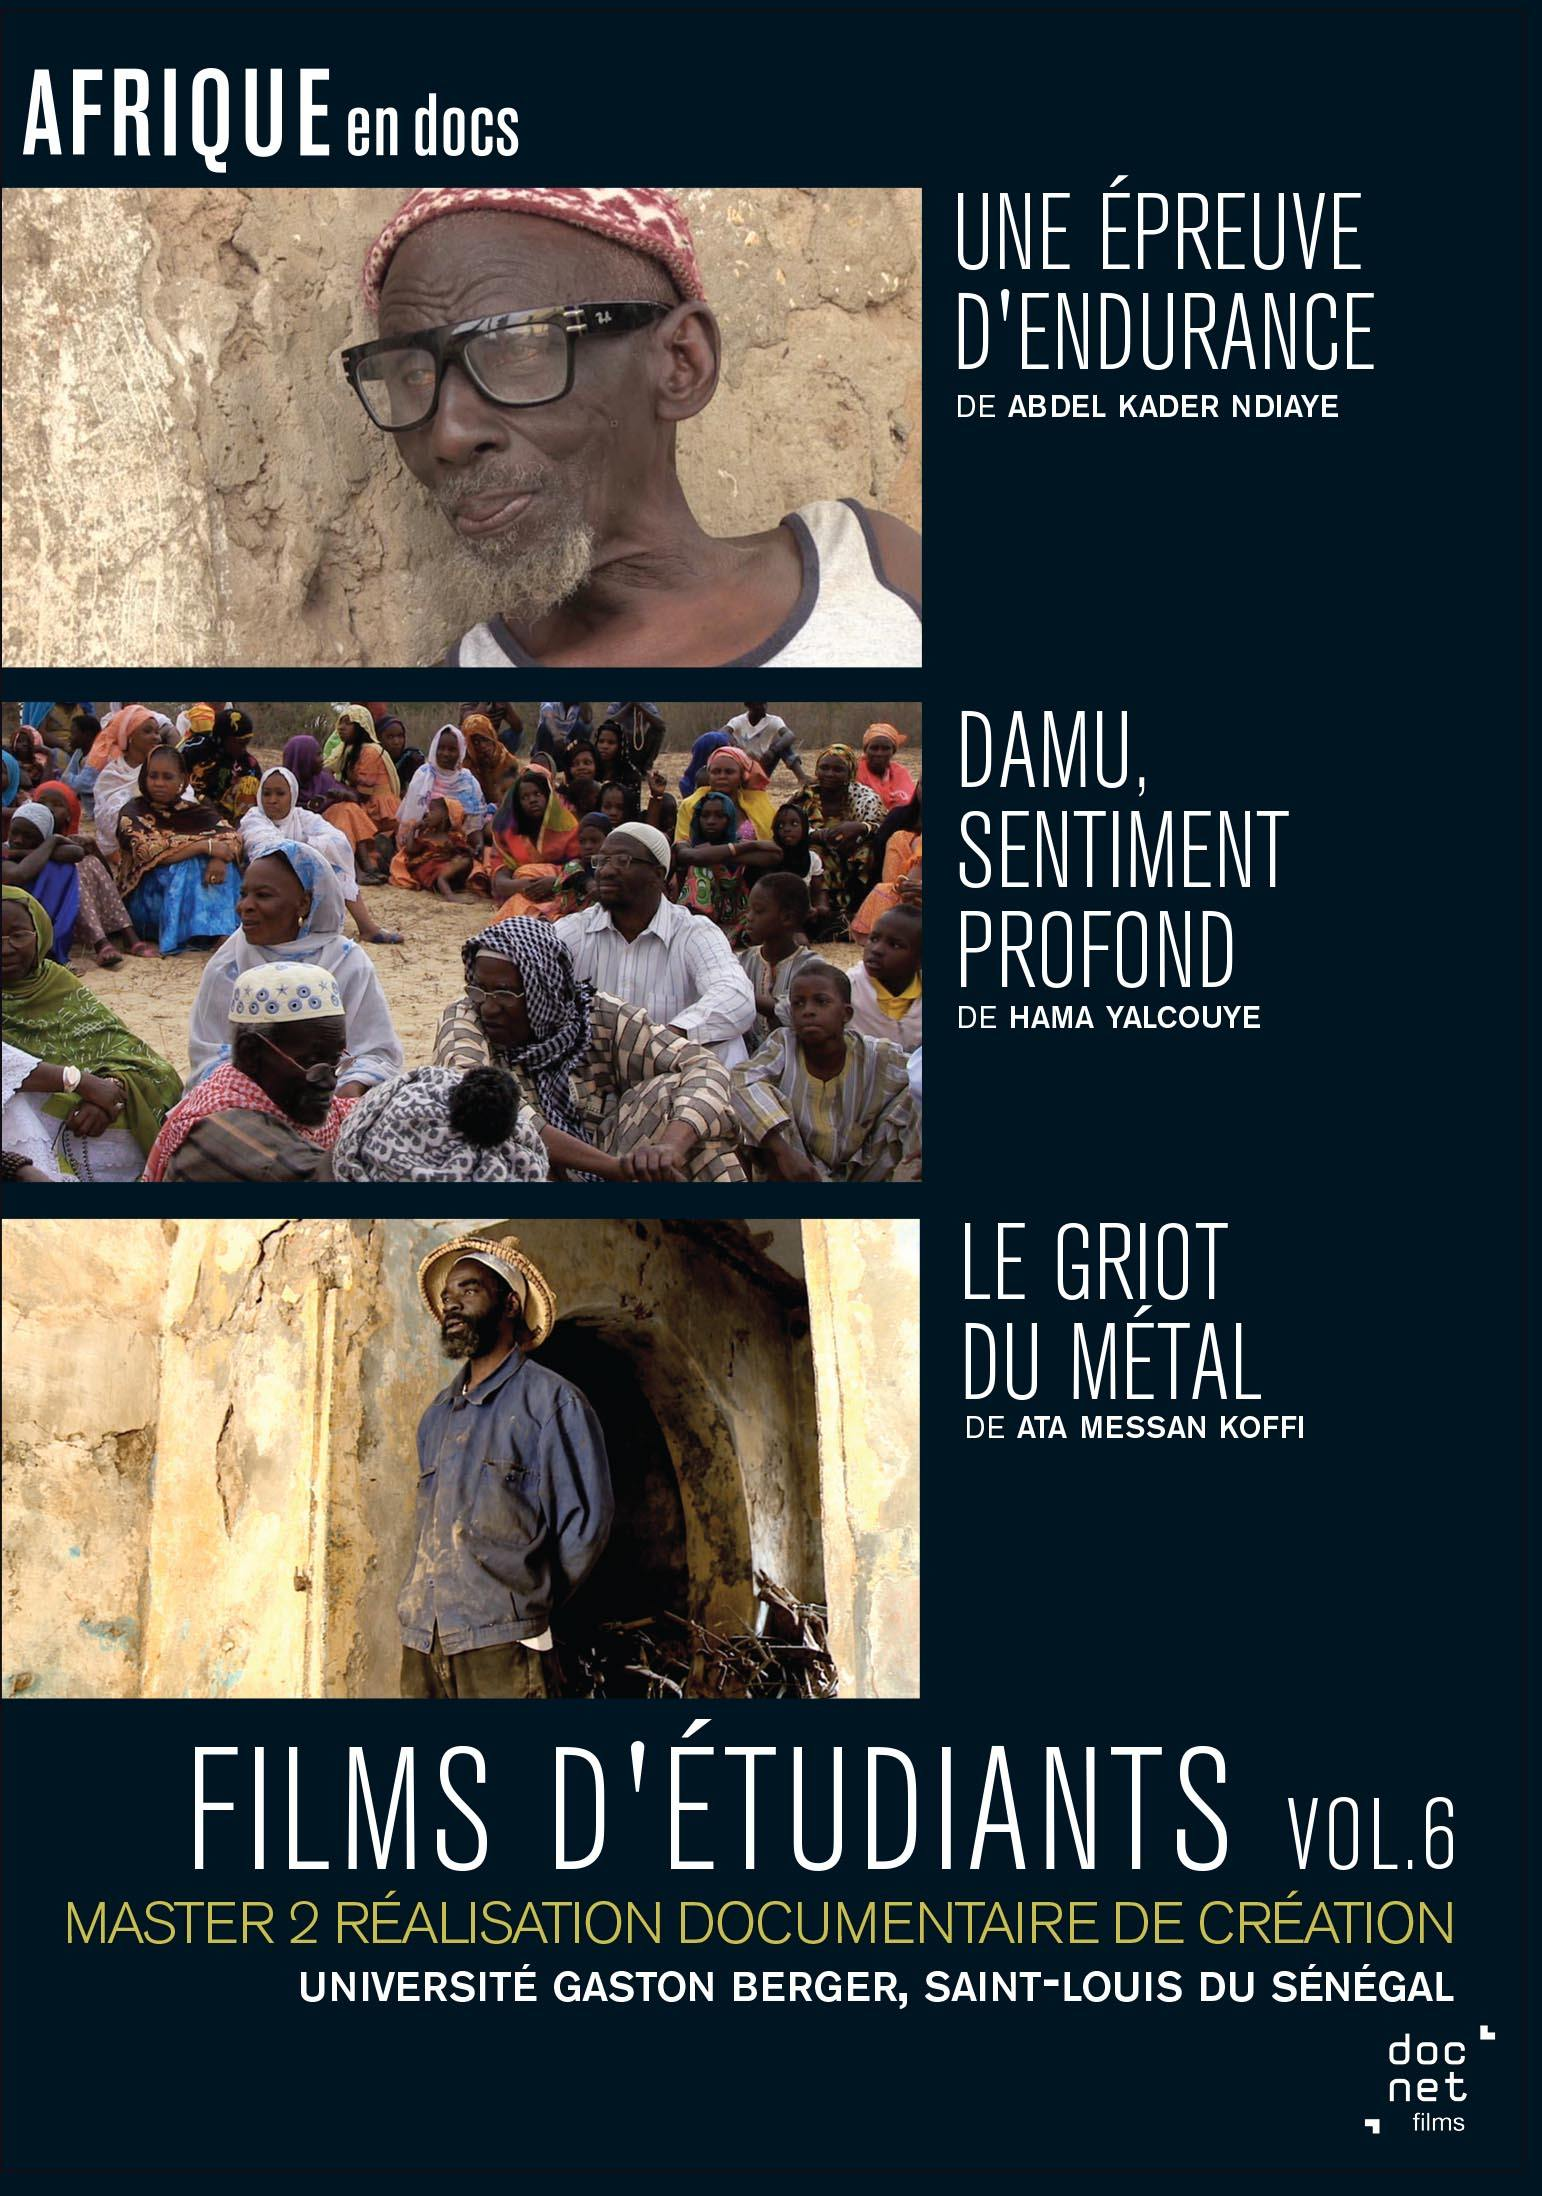 Films d'etudiants saint-louis du senegal v6 - dvd